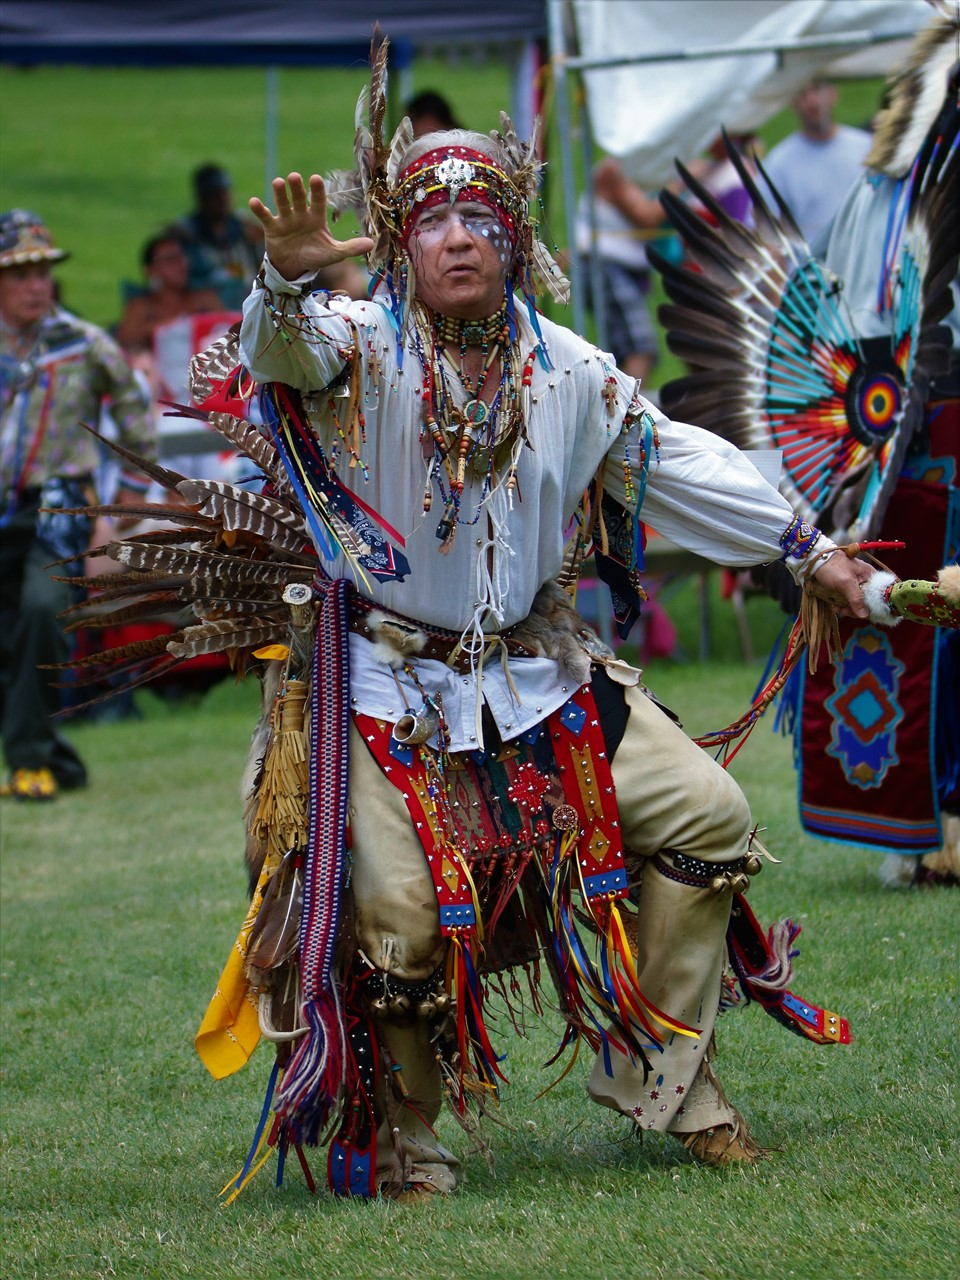 2017 07 09 55 Loudonville OH Mohican Pow Wow.jpg